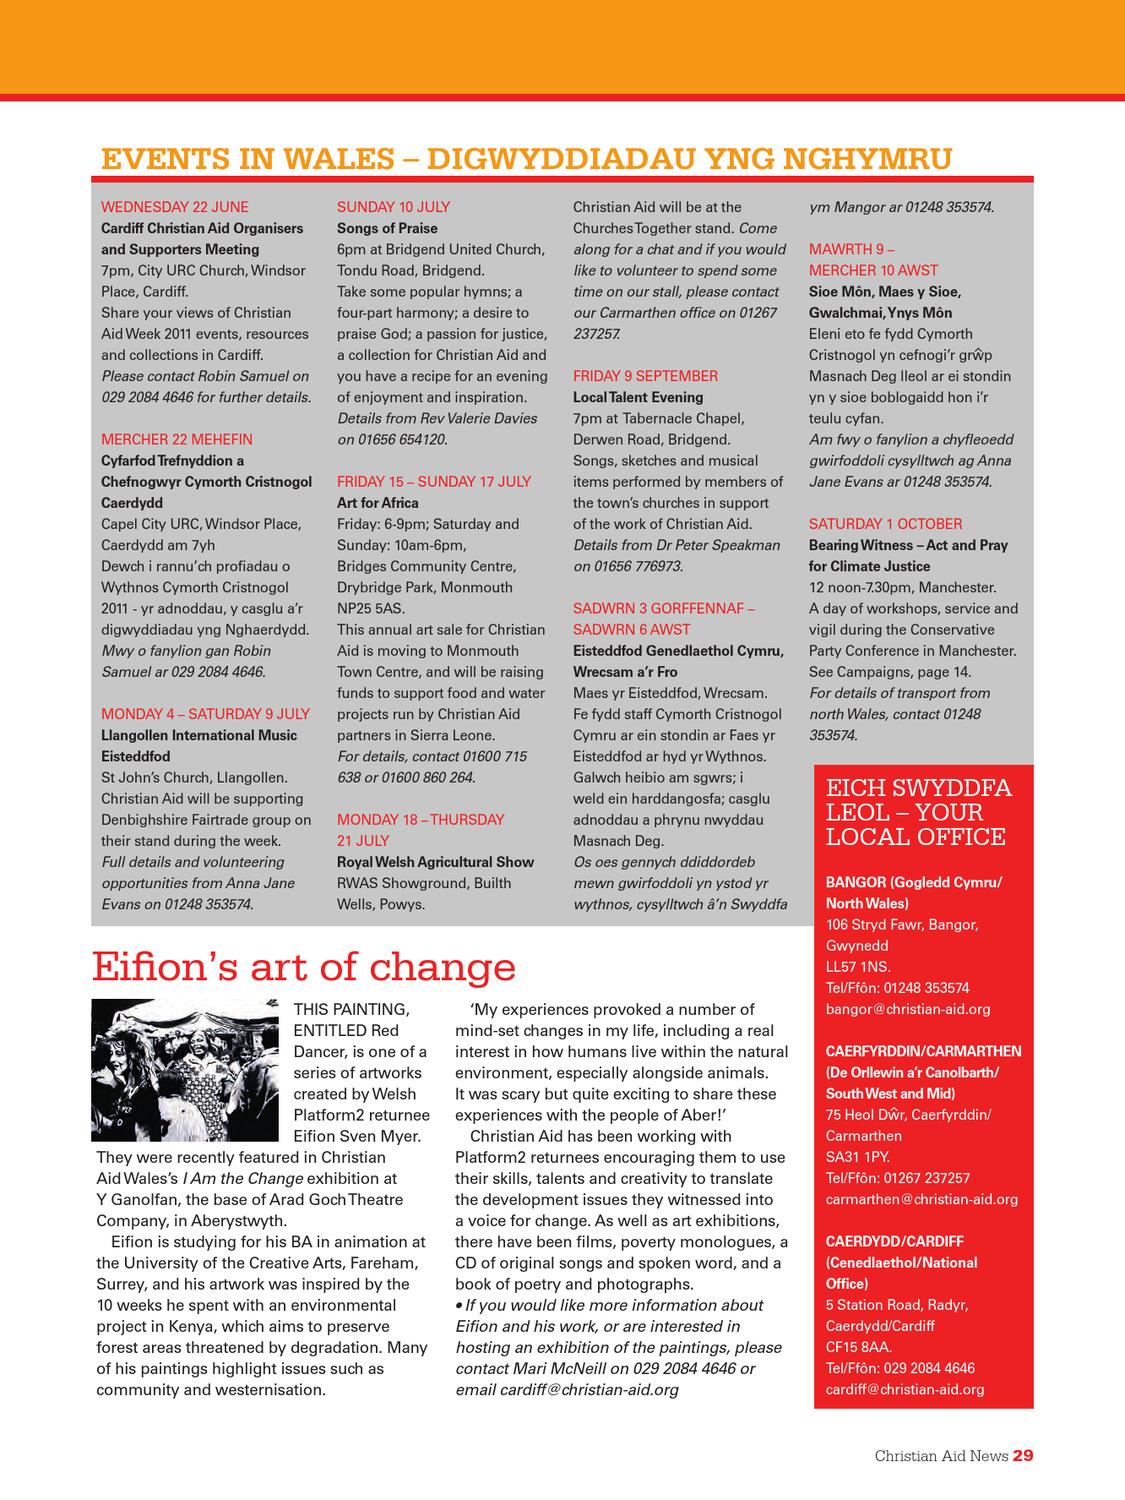 Christian Aid News 52 by Christian Aid - issuu